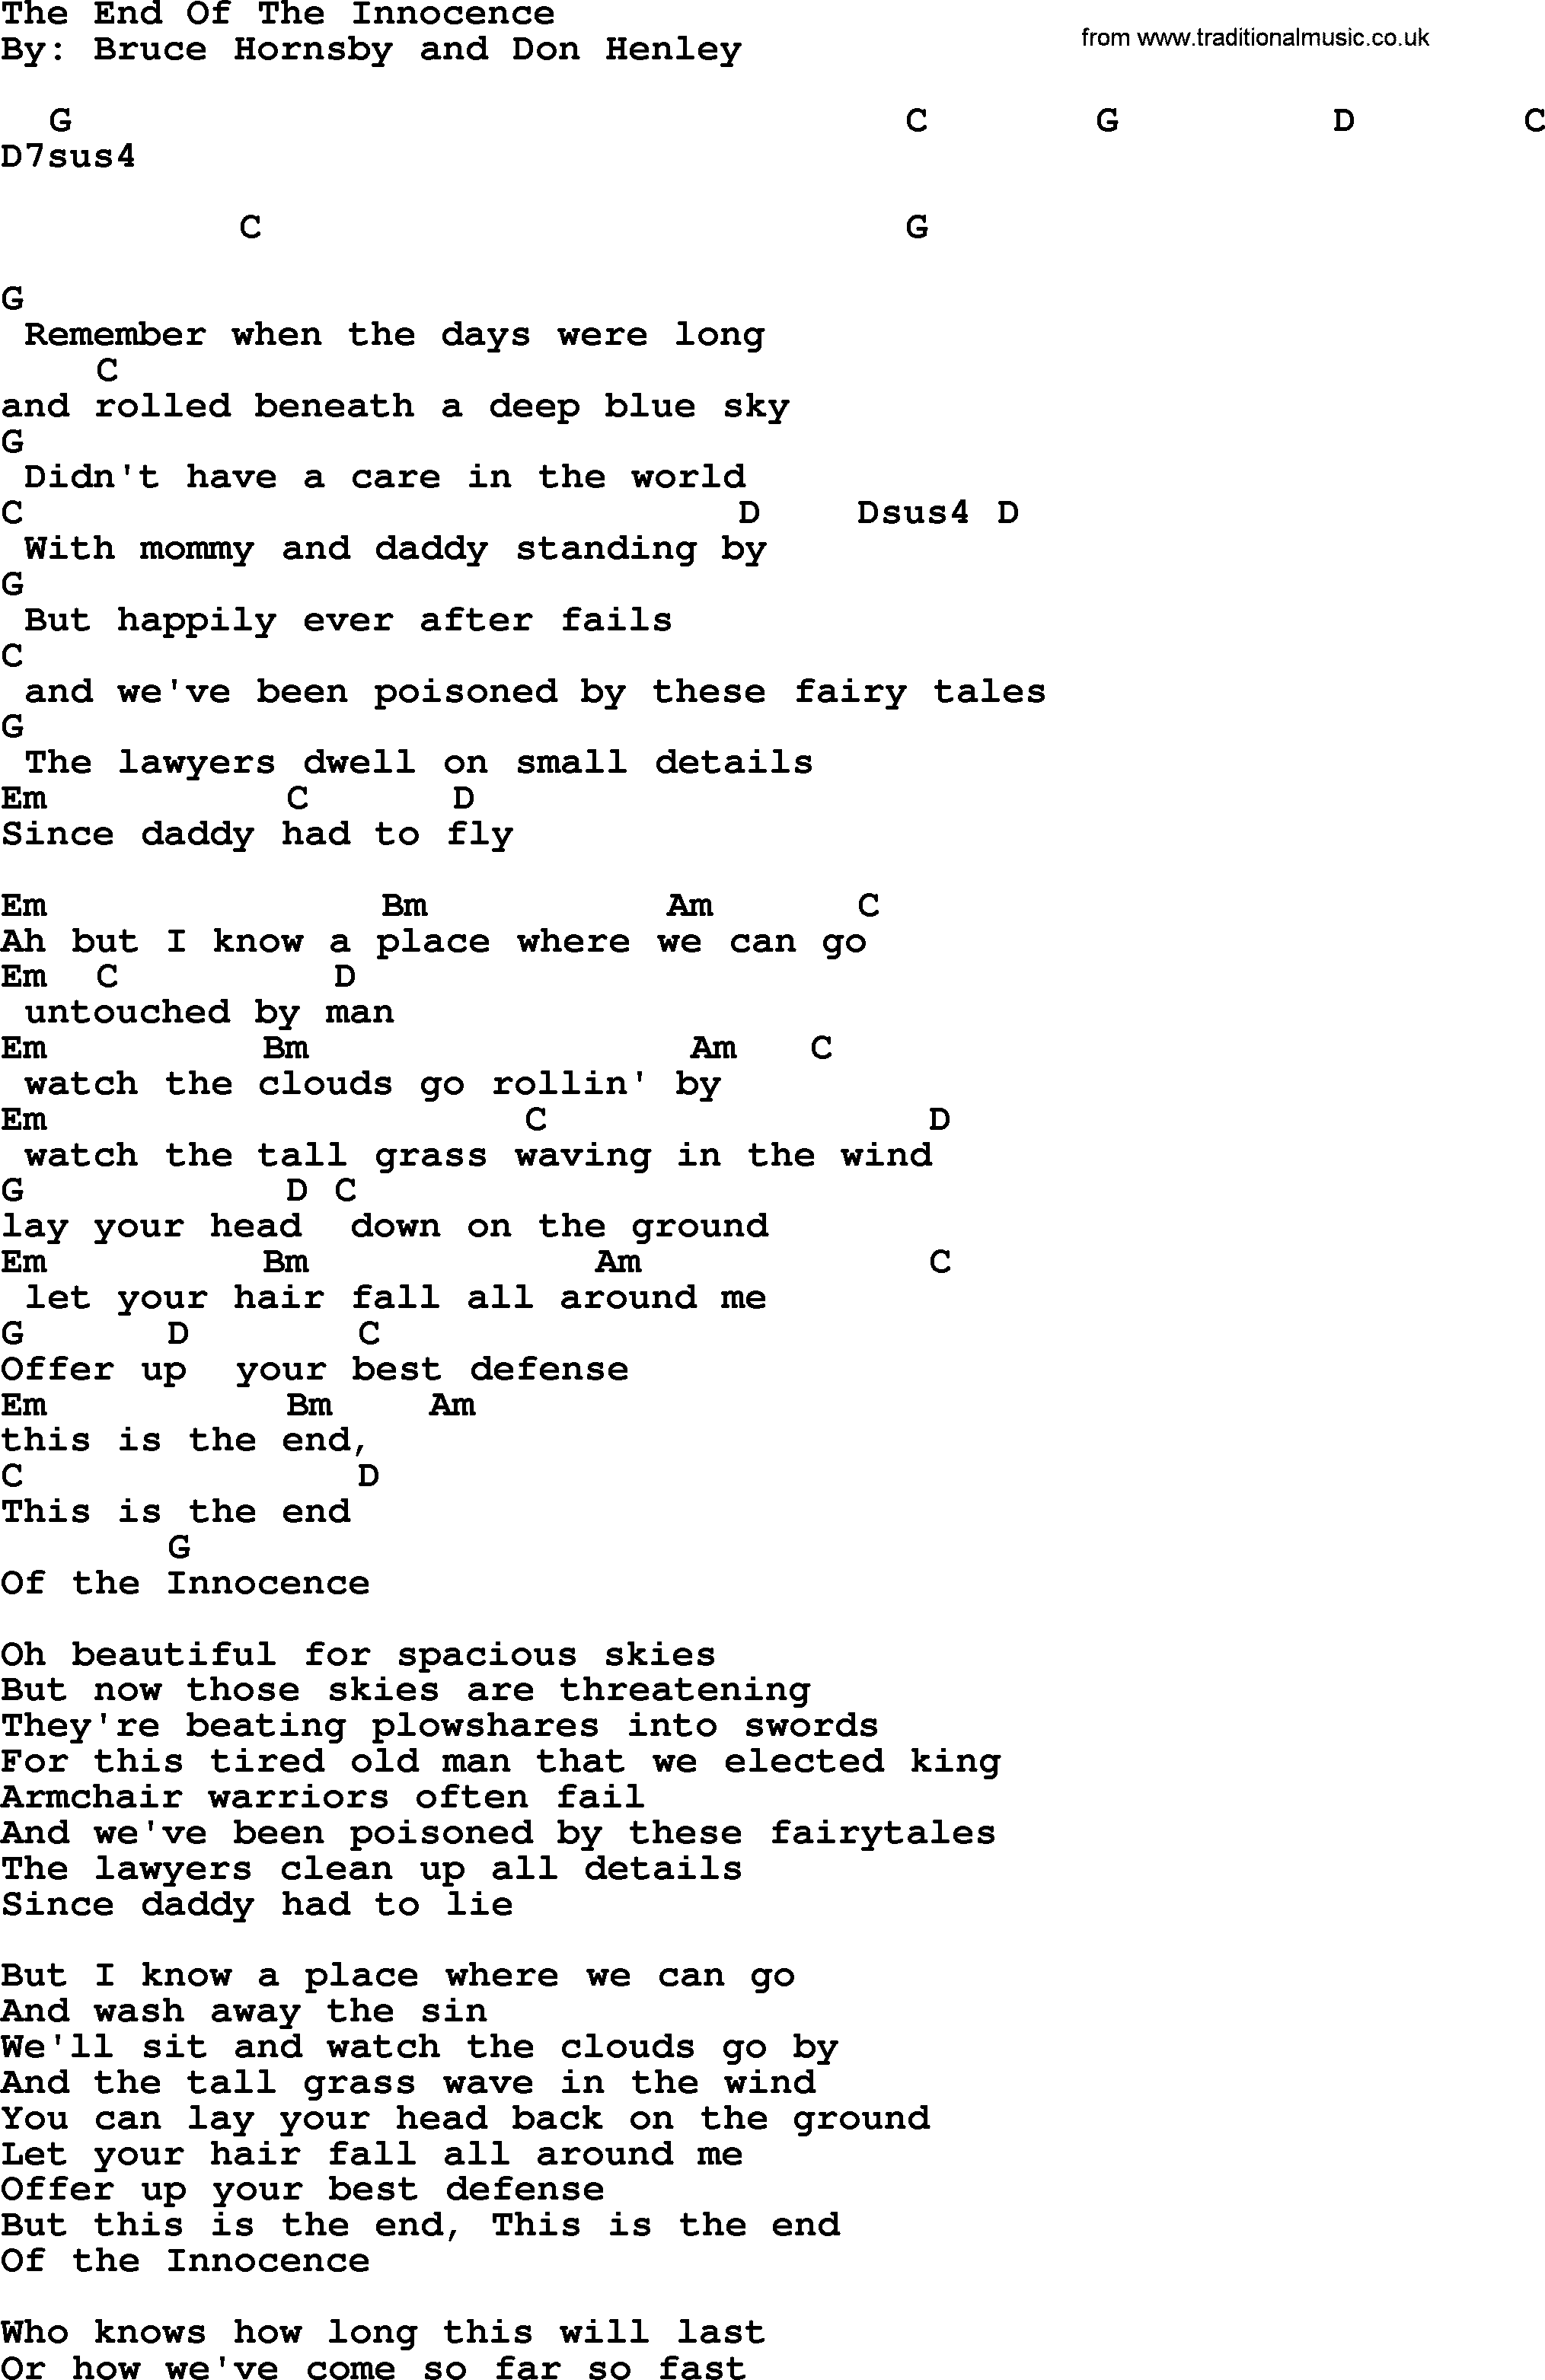 Bob Dylan song - The End Of The Innocence, lyrics and chords